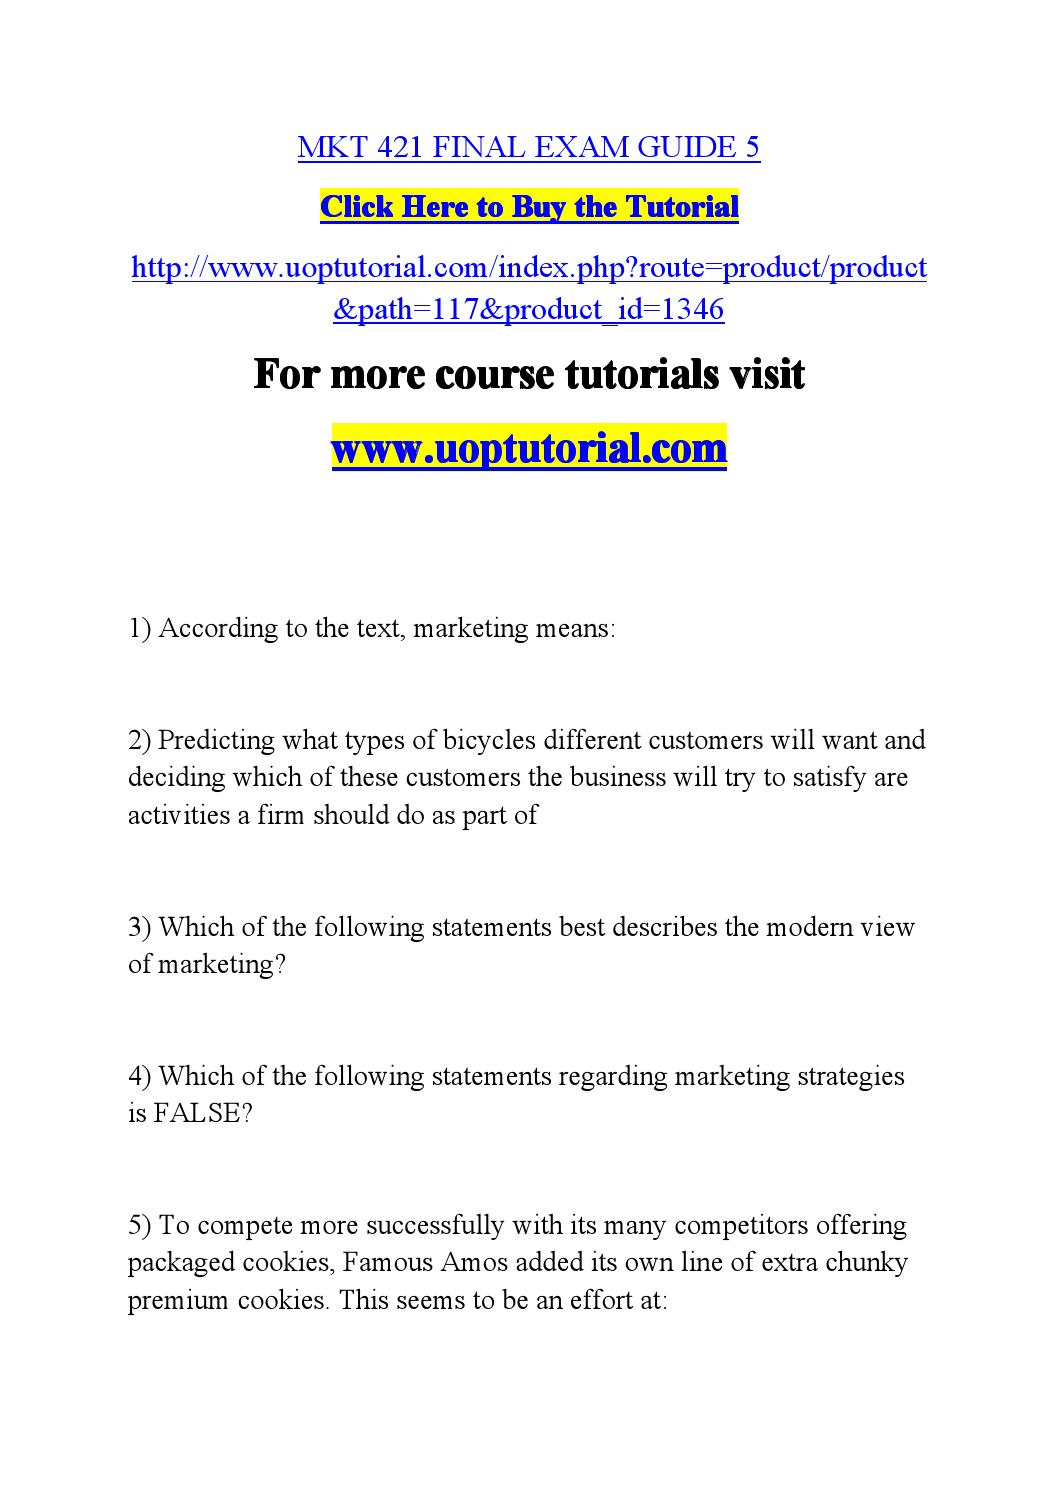 Which of the following statements best describes the modern view of marketing